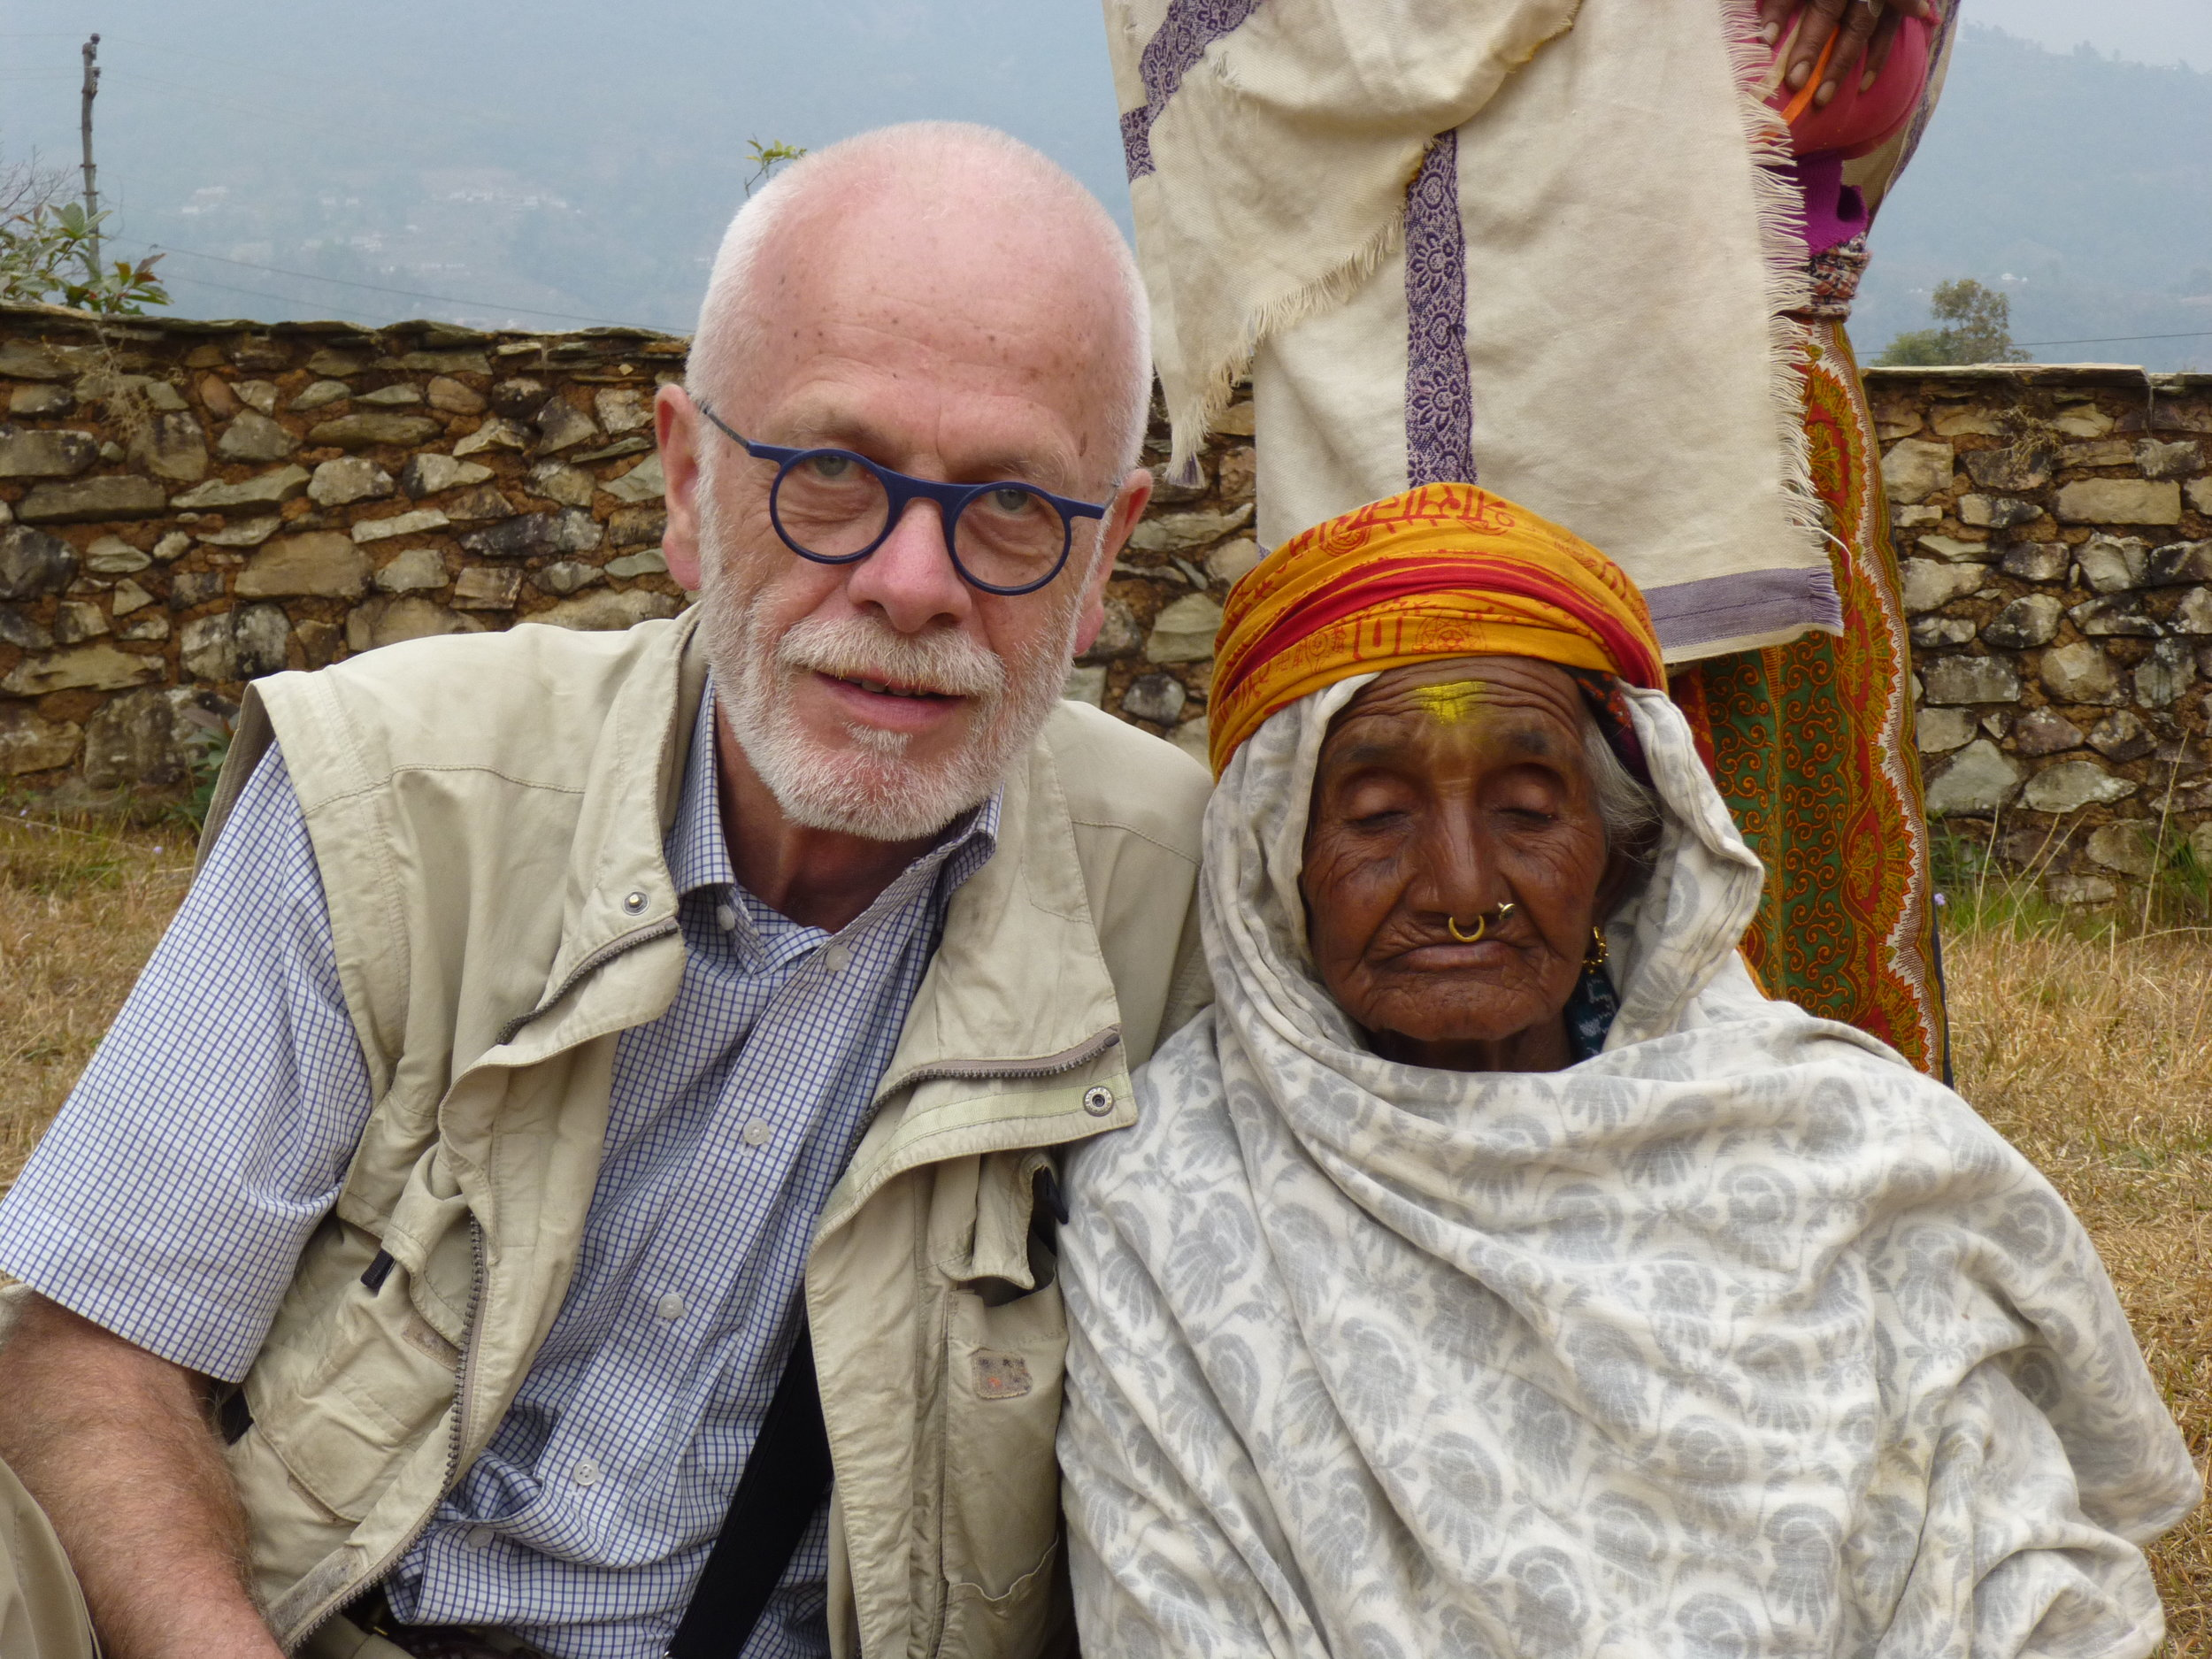 With CARE in Nepal, March 2017